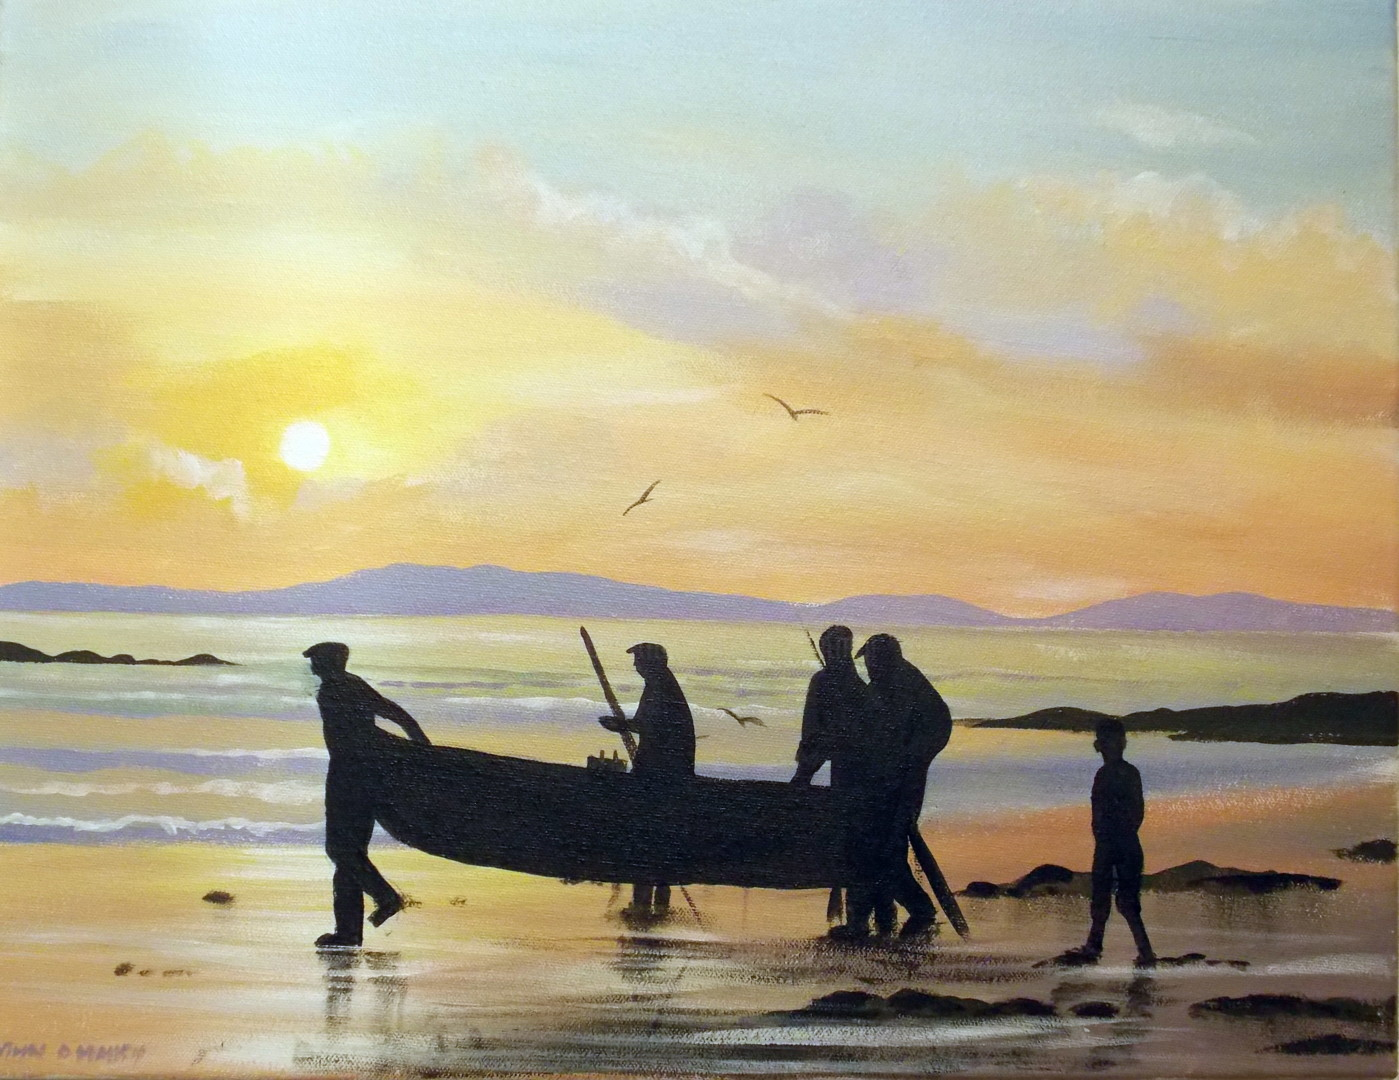 Cathal O Malley - launching a currach